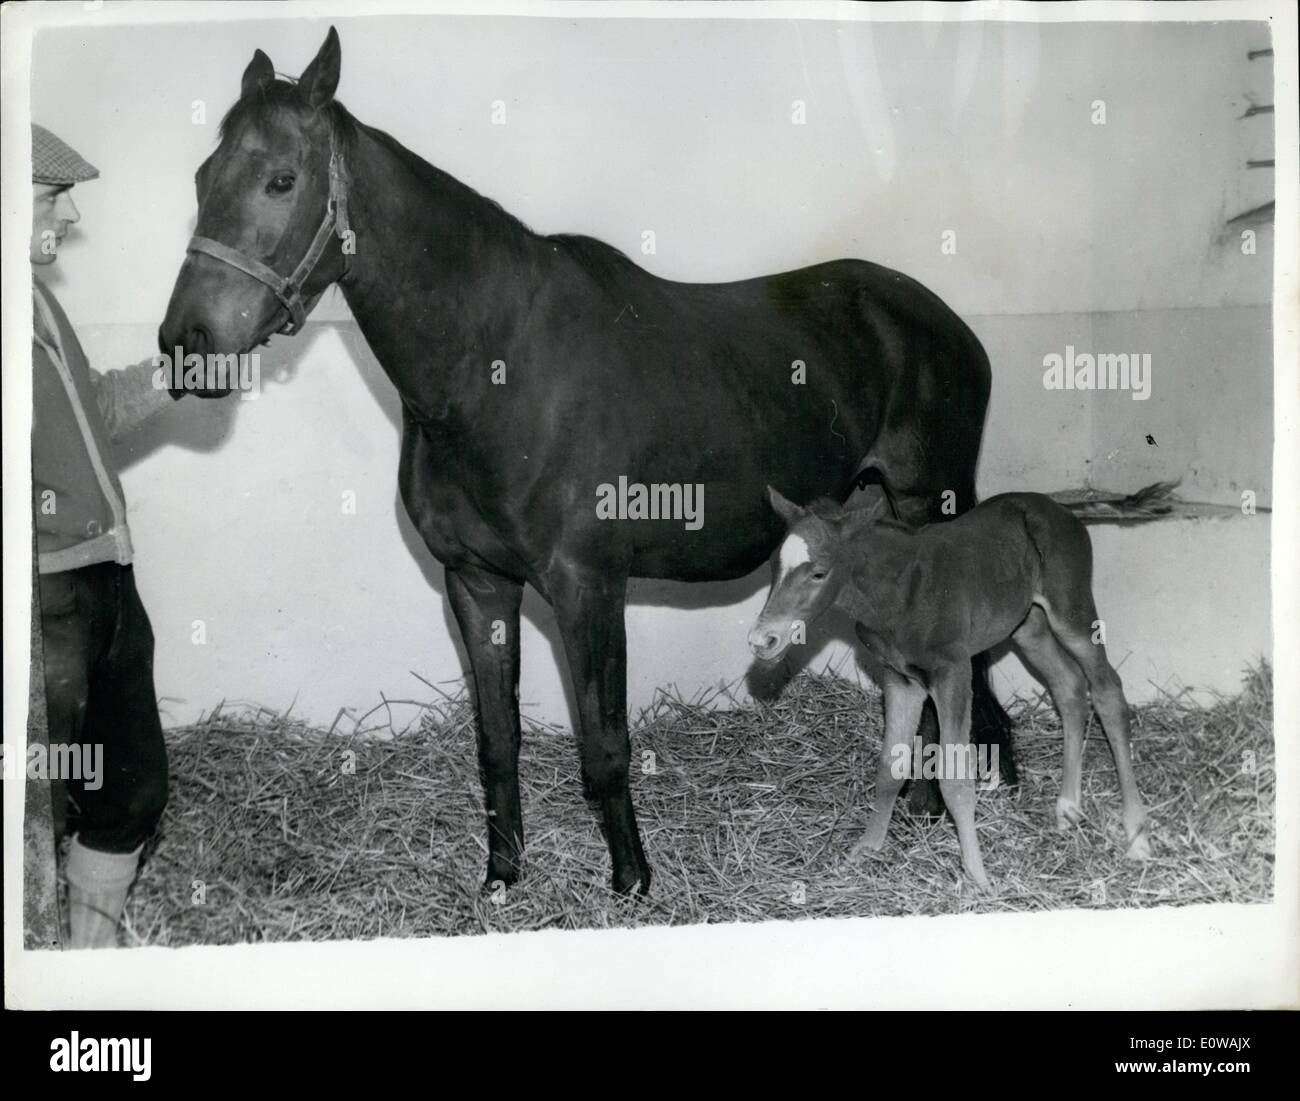 Mar. 26, 1962 - 26-3-62 Foal may be Princess Benedikte's first racehorse sired by Aureole . The famous stallion Aureole owned by H.M. The Queen and which came second in the 1953 having their newborn foal adopted as the futures riding and racehorse of Princess Benedikte of Denmark. On her eighteen birthday the Princess will choose between this foal and another, not yet born to the same famed father and a fine racehorse Asani Nairobi . It is intended that the Princess will have a perfect horse - Stock Image